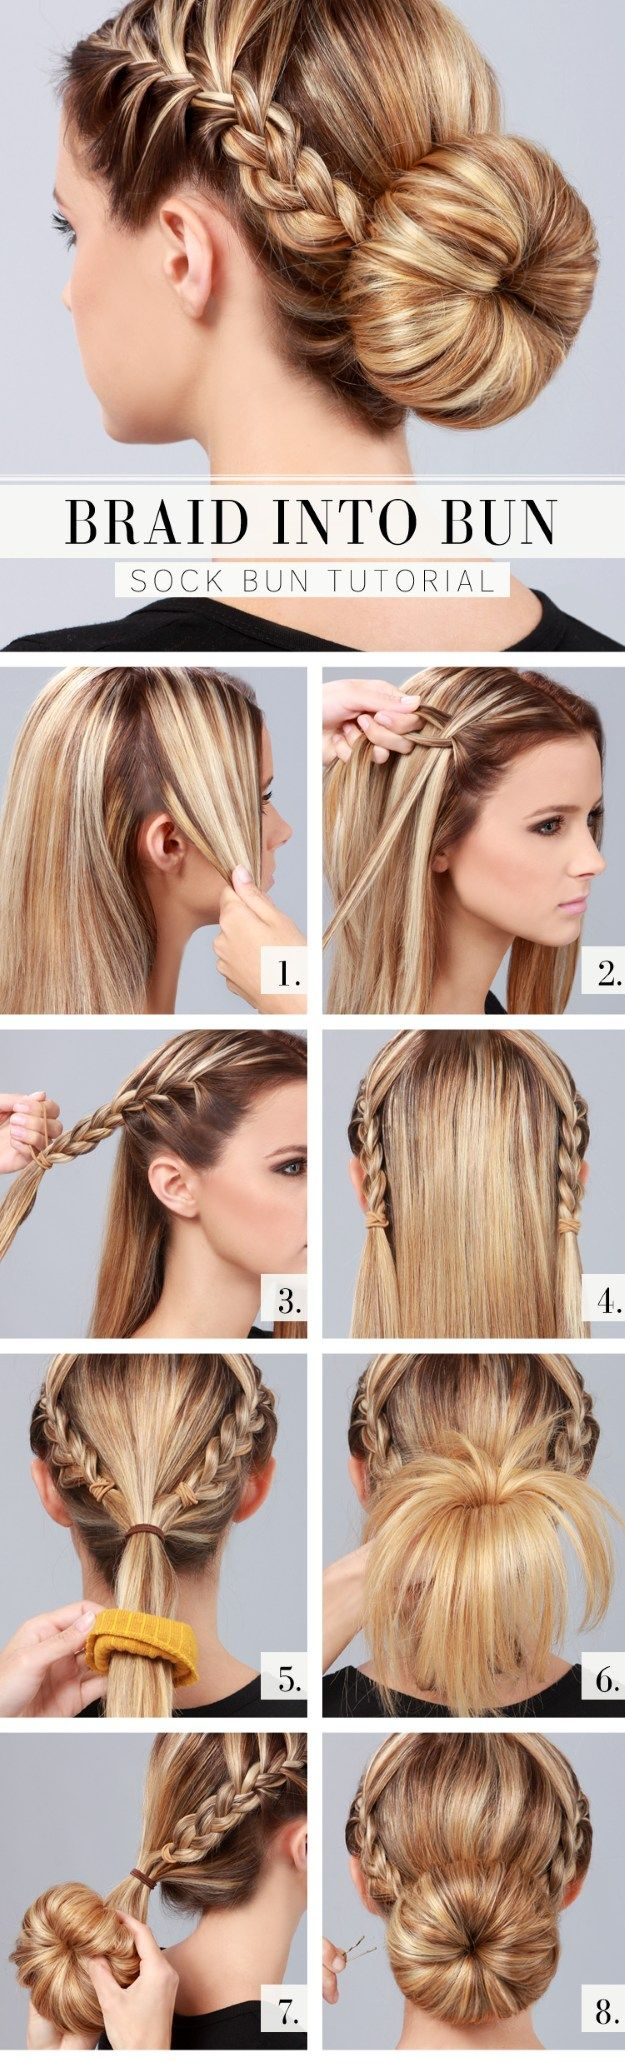 Braids In Short Hair Style by wearticles.com